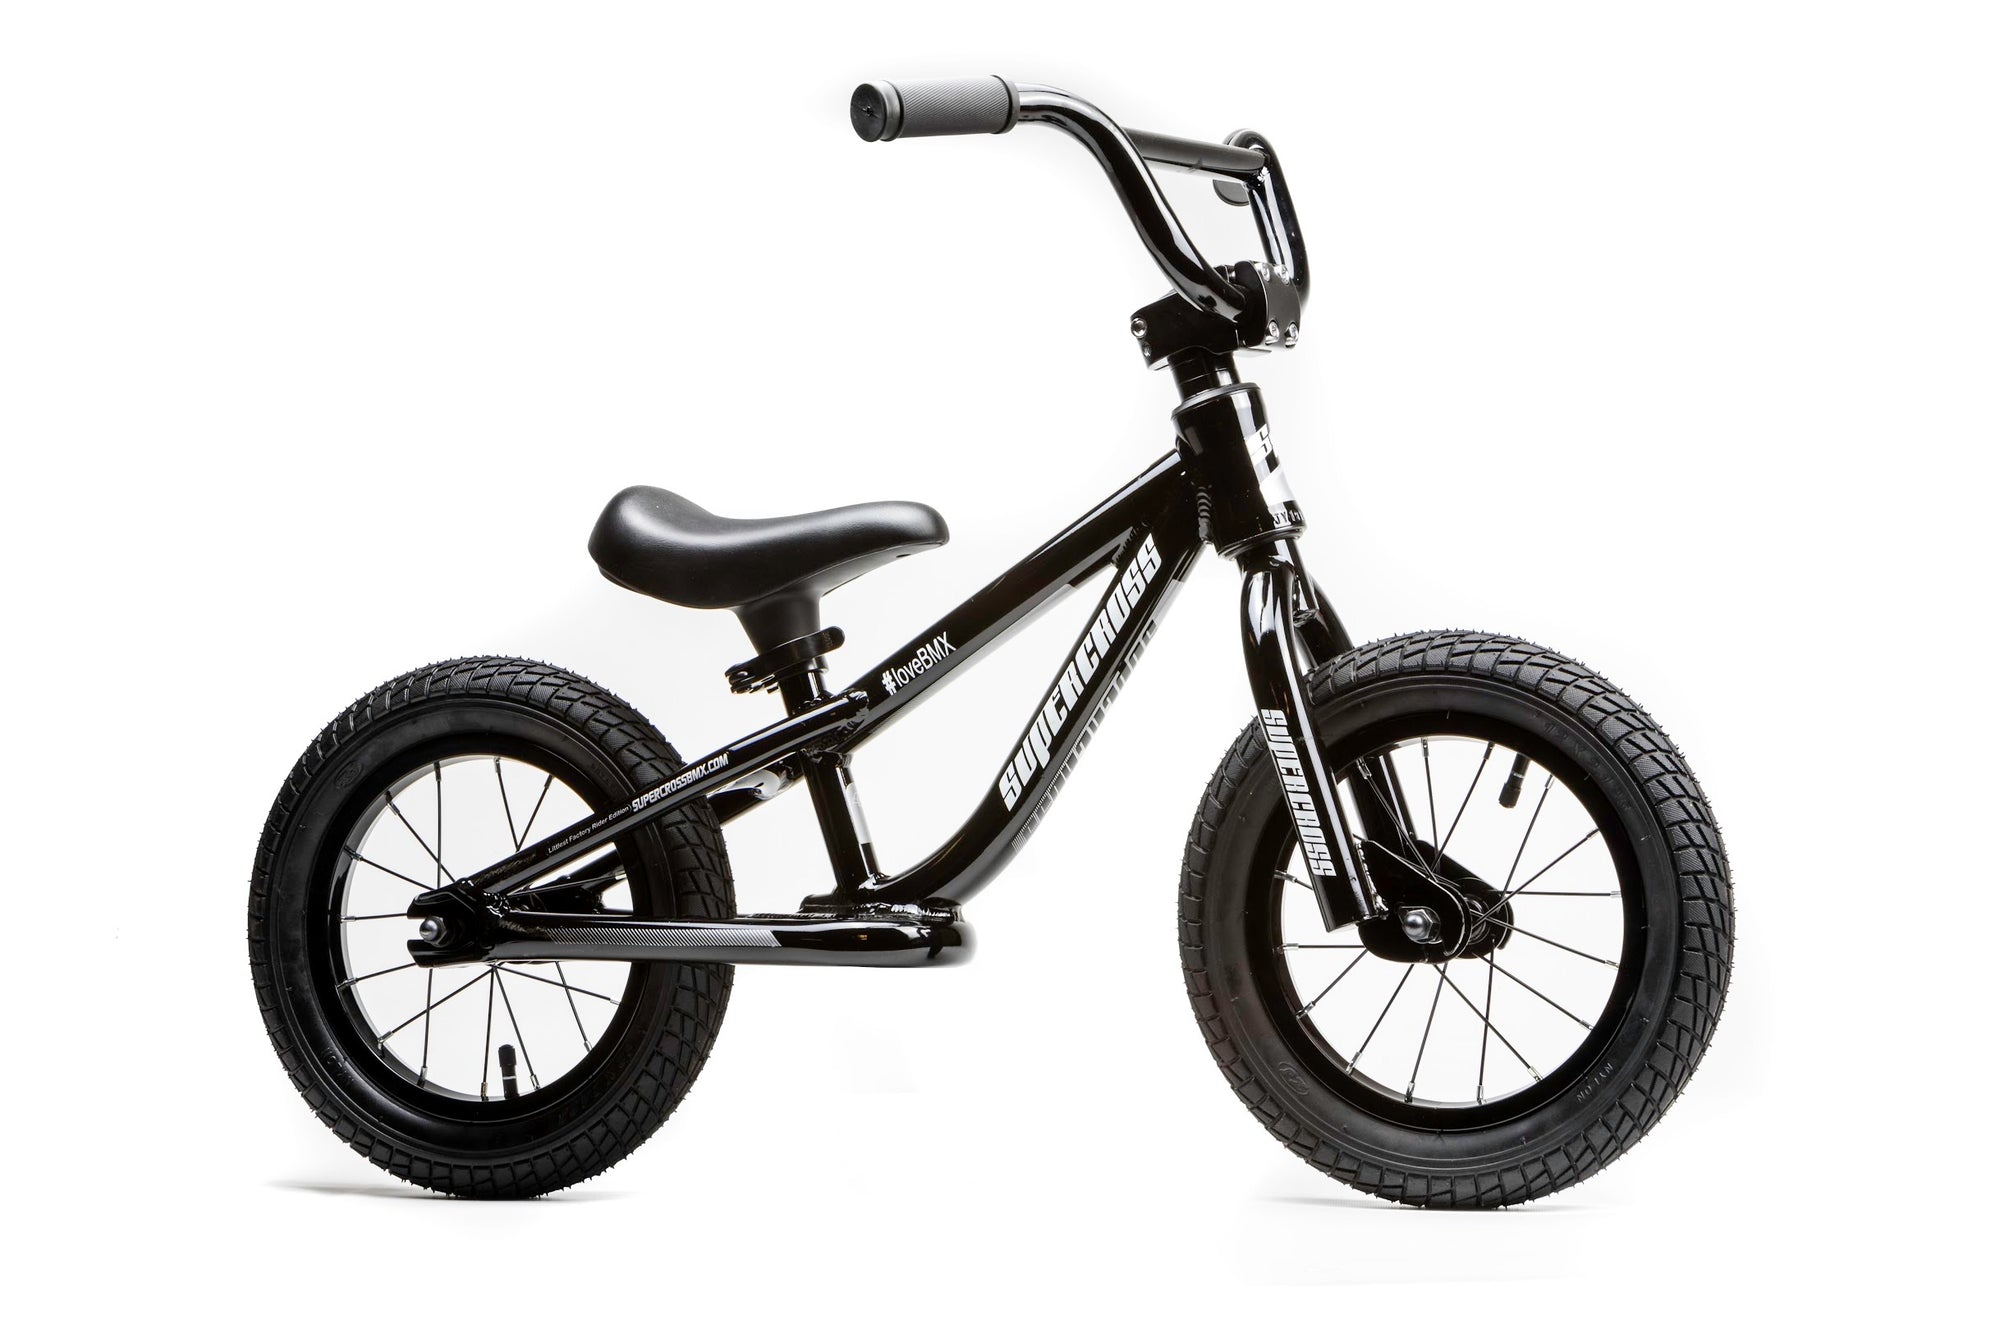 Supercross BMX | BMX Balance Bike - Supercross BMX - BMX Racing